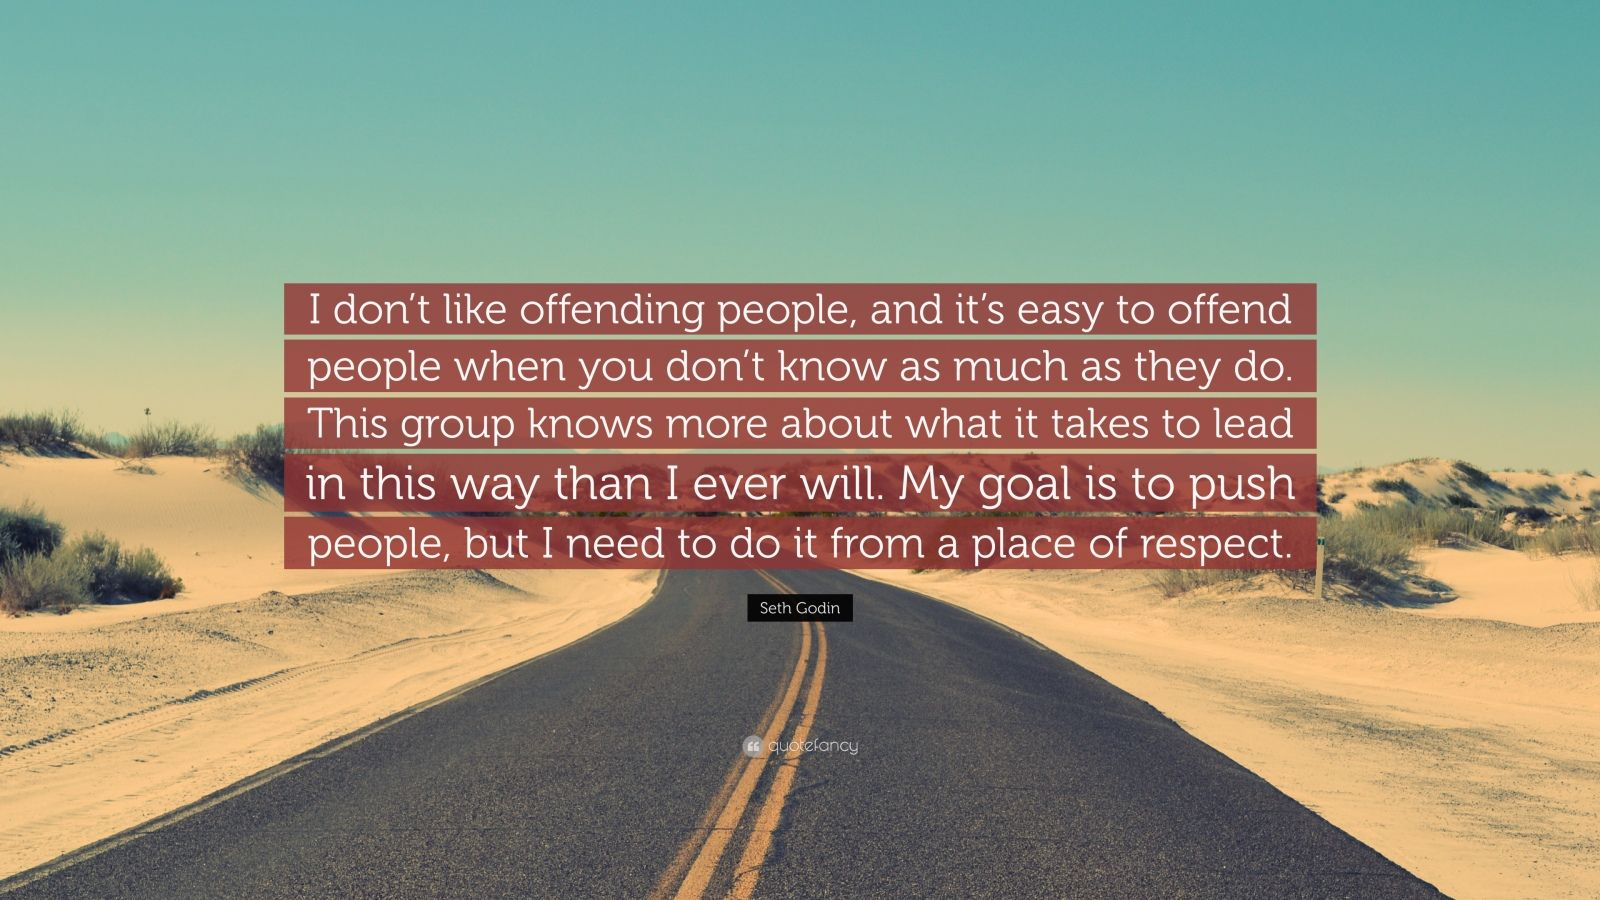 """Seth Godin Quote: """"I don't like offending people, and it's easy to offend people when you don't know as much as they do. This group knows more about what it takes to lead in this way than I ever will. My goal is to push people, but I need to do it from a place of respect."""""""